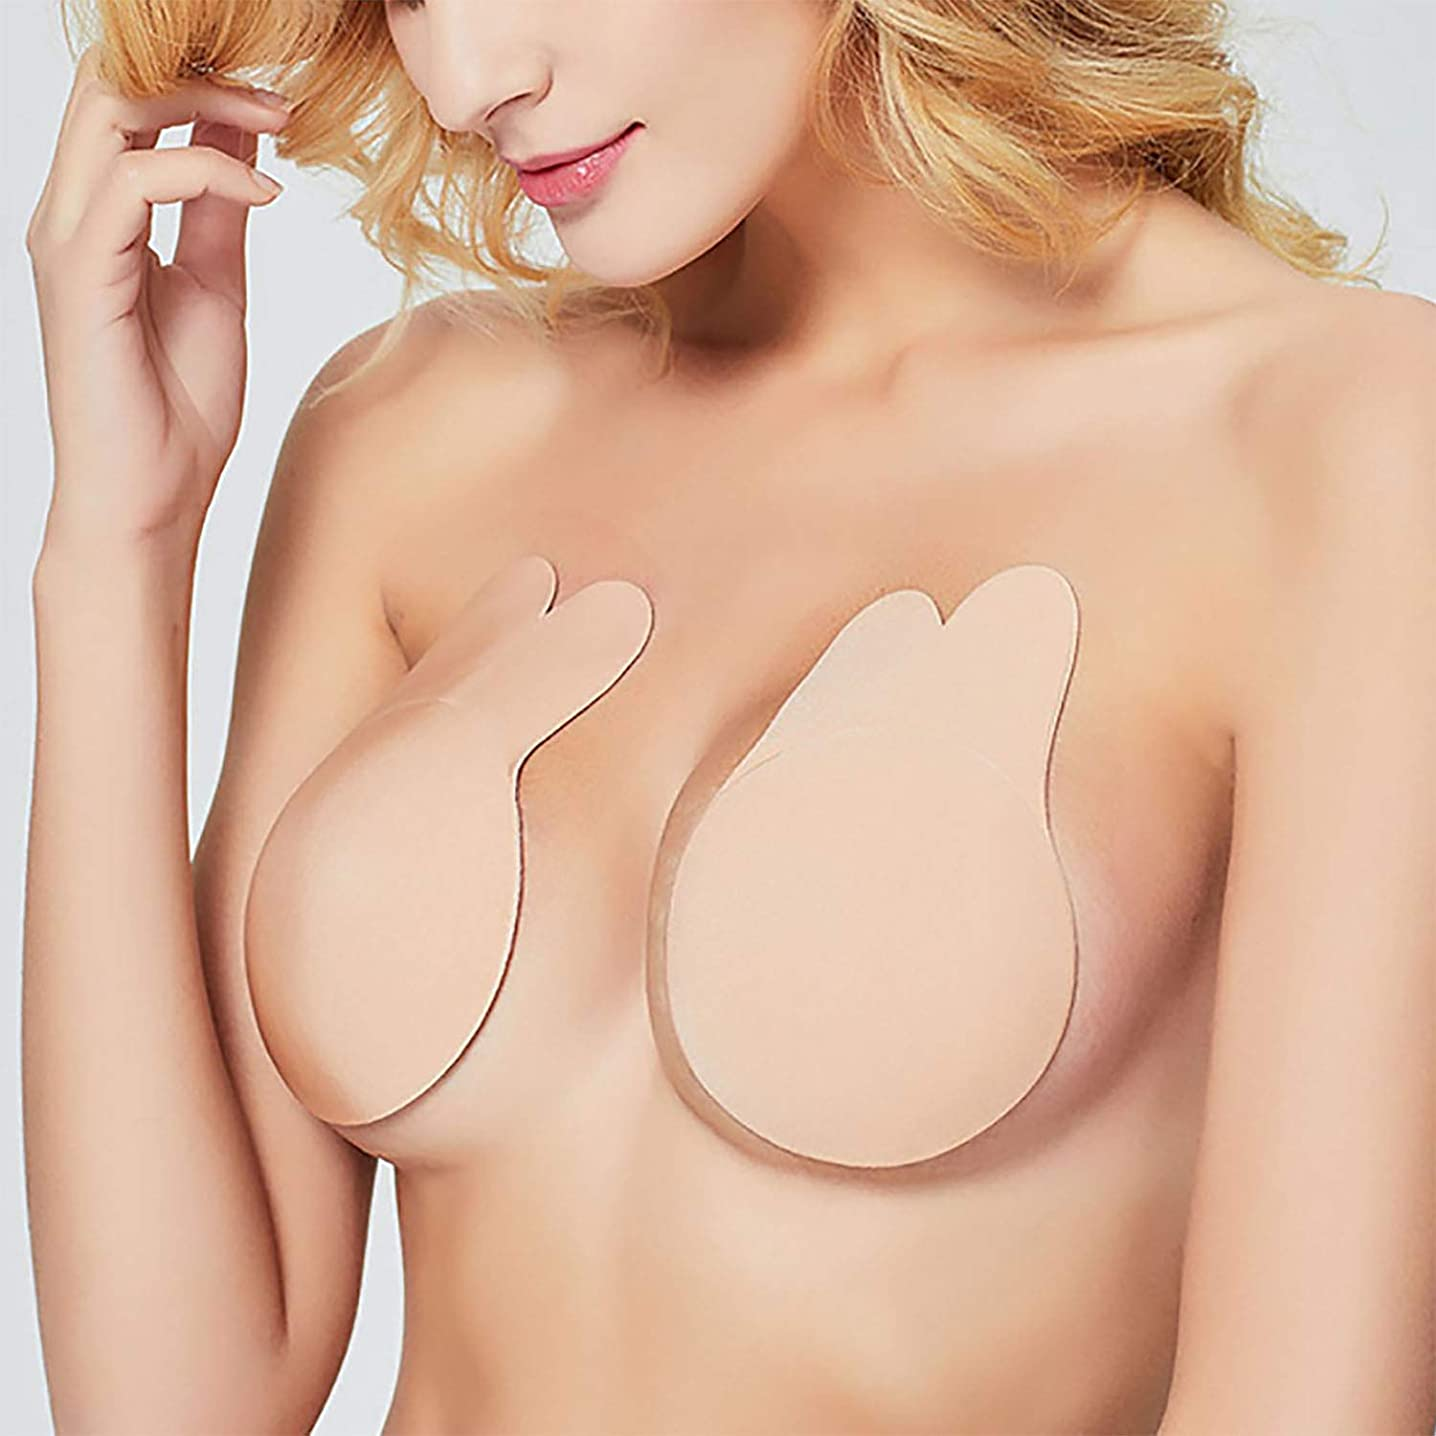 Adhesive Bra, Strapless Bra Breast Lift Sticky Bra for Backless Dress with Nipple Covers Nude (Nude)